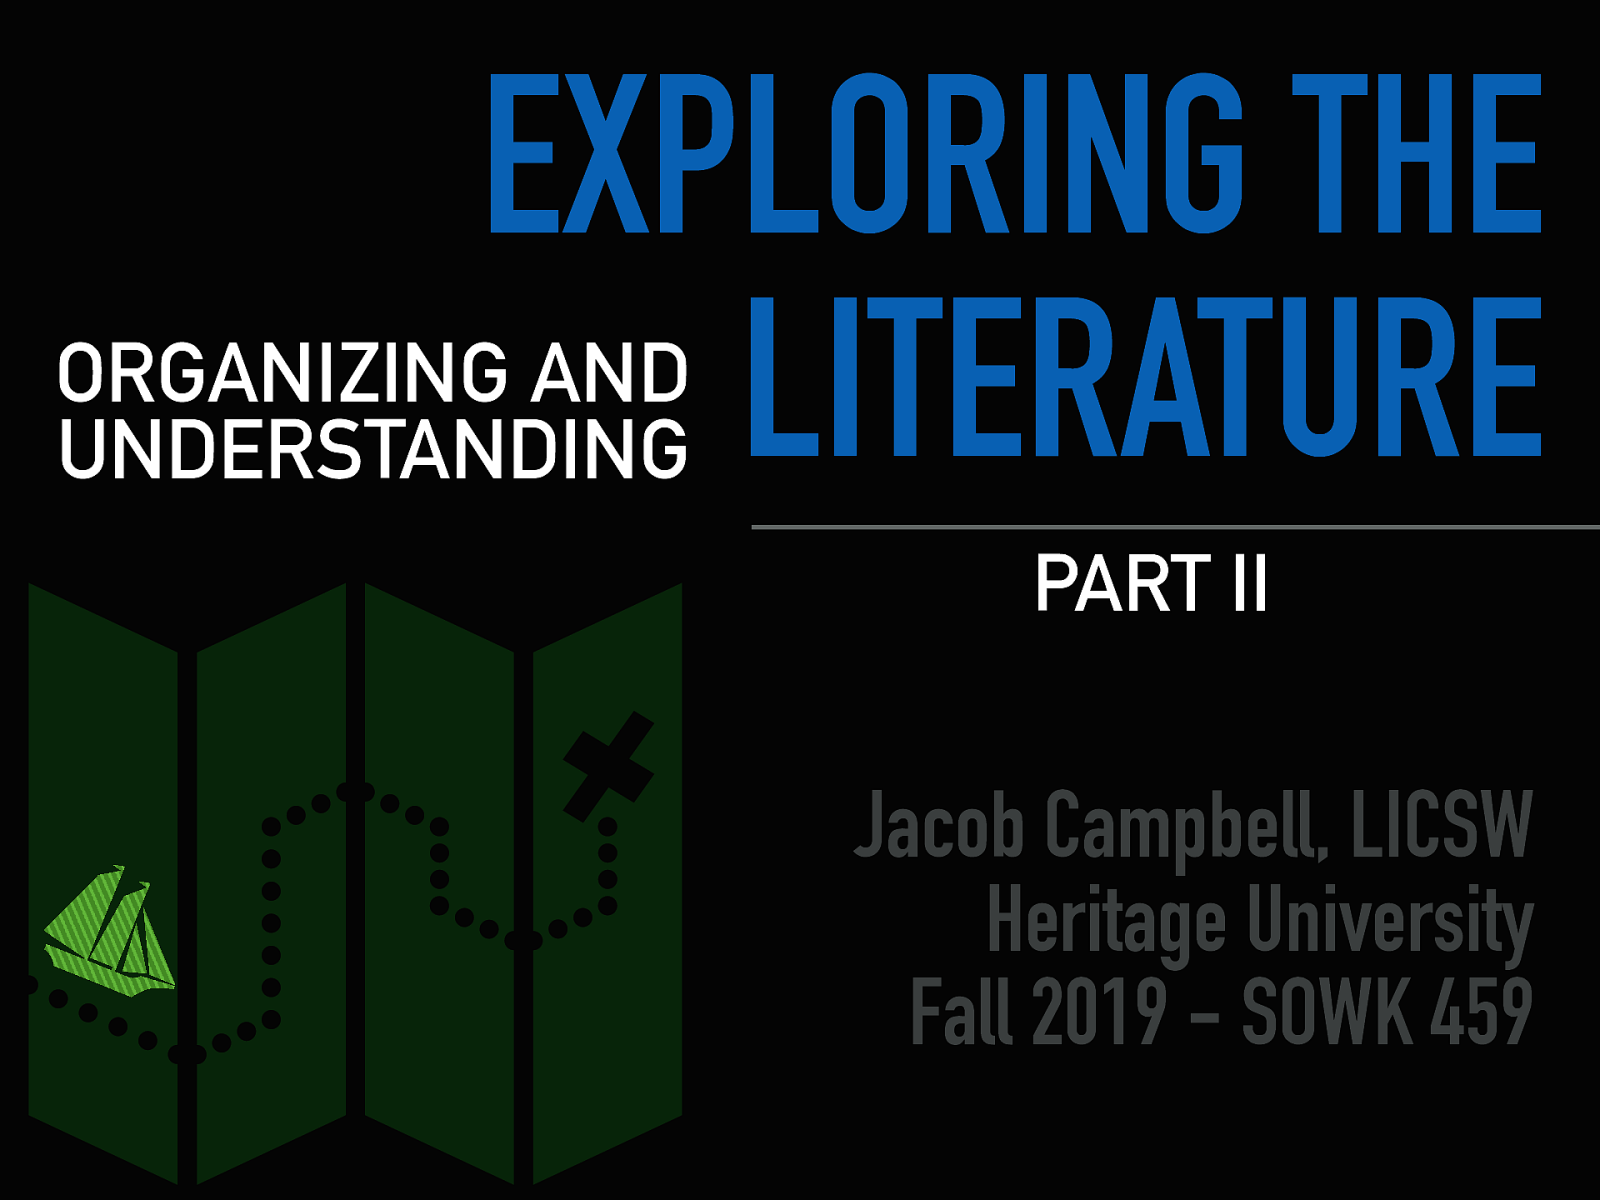 Week 07 - Exploring the Literature Part II - Organizing and Understanding